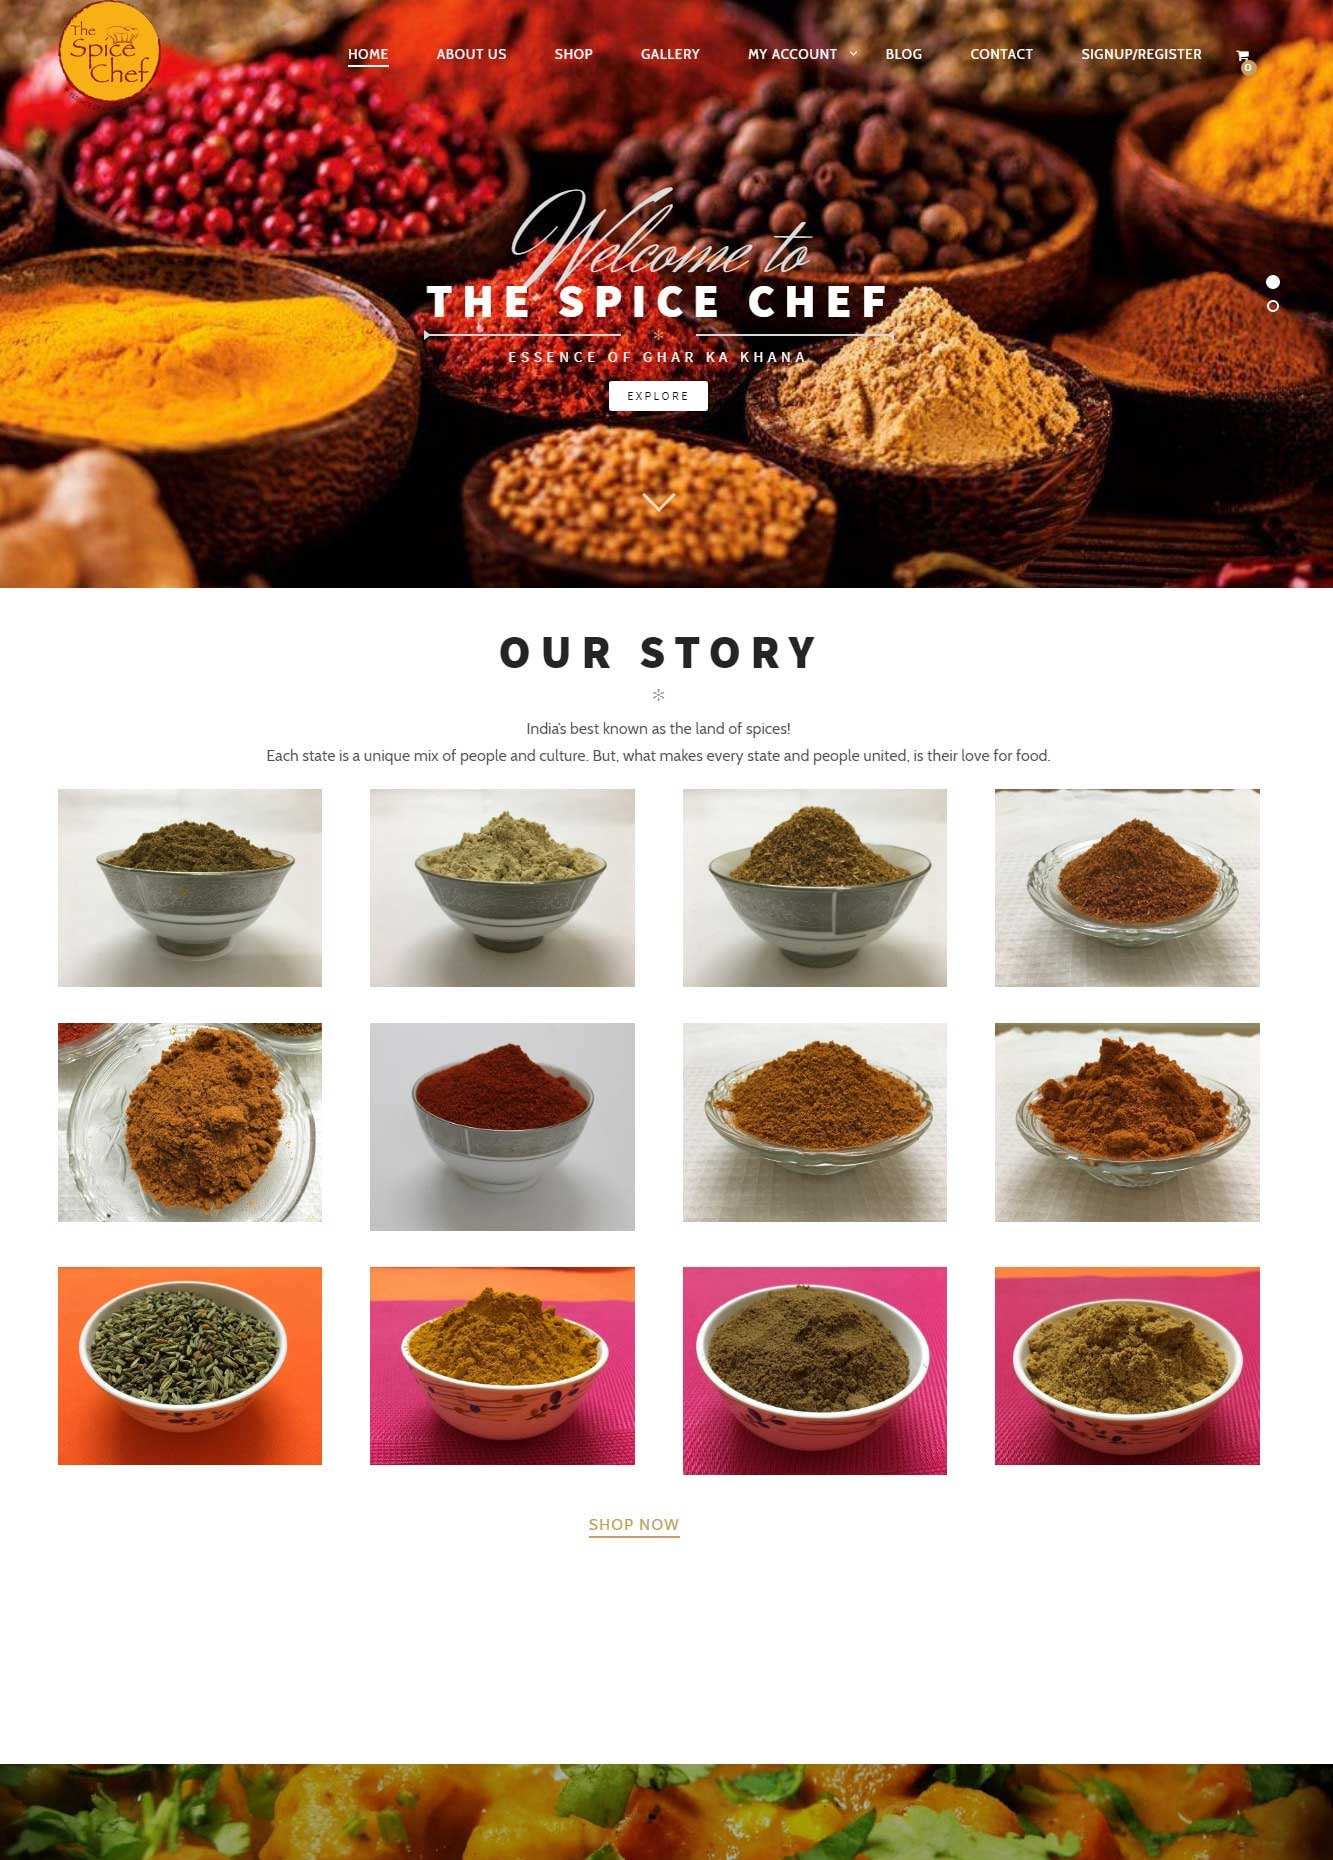 The Spice chef